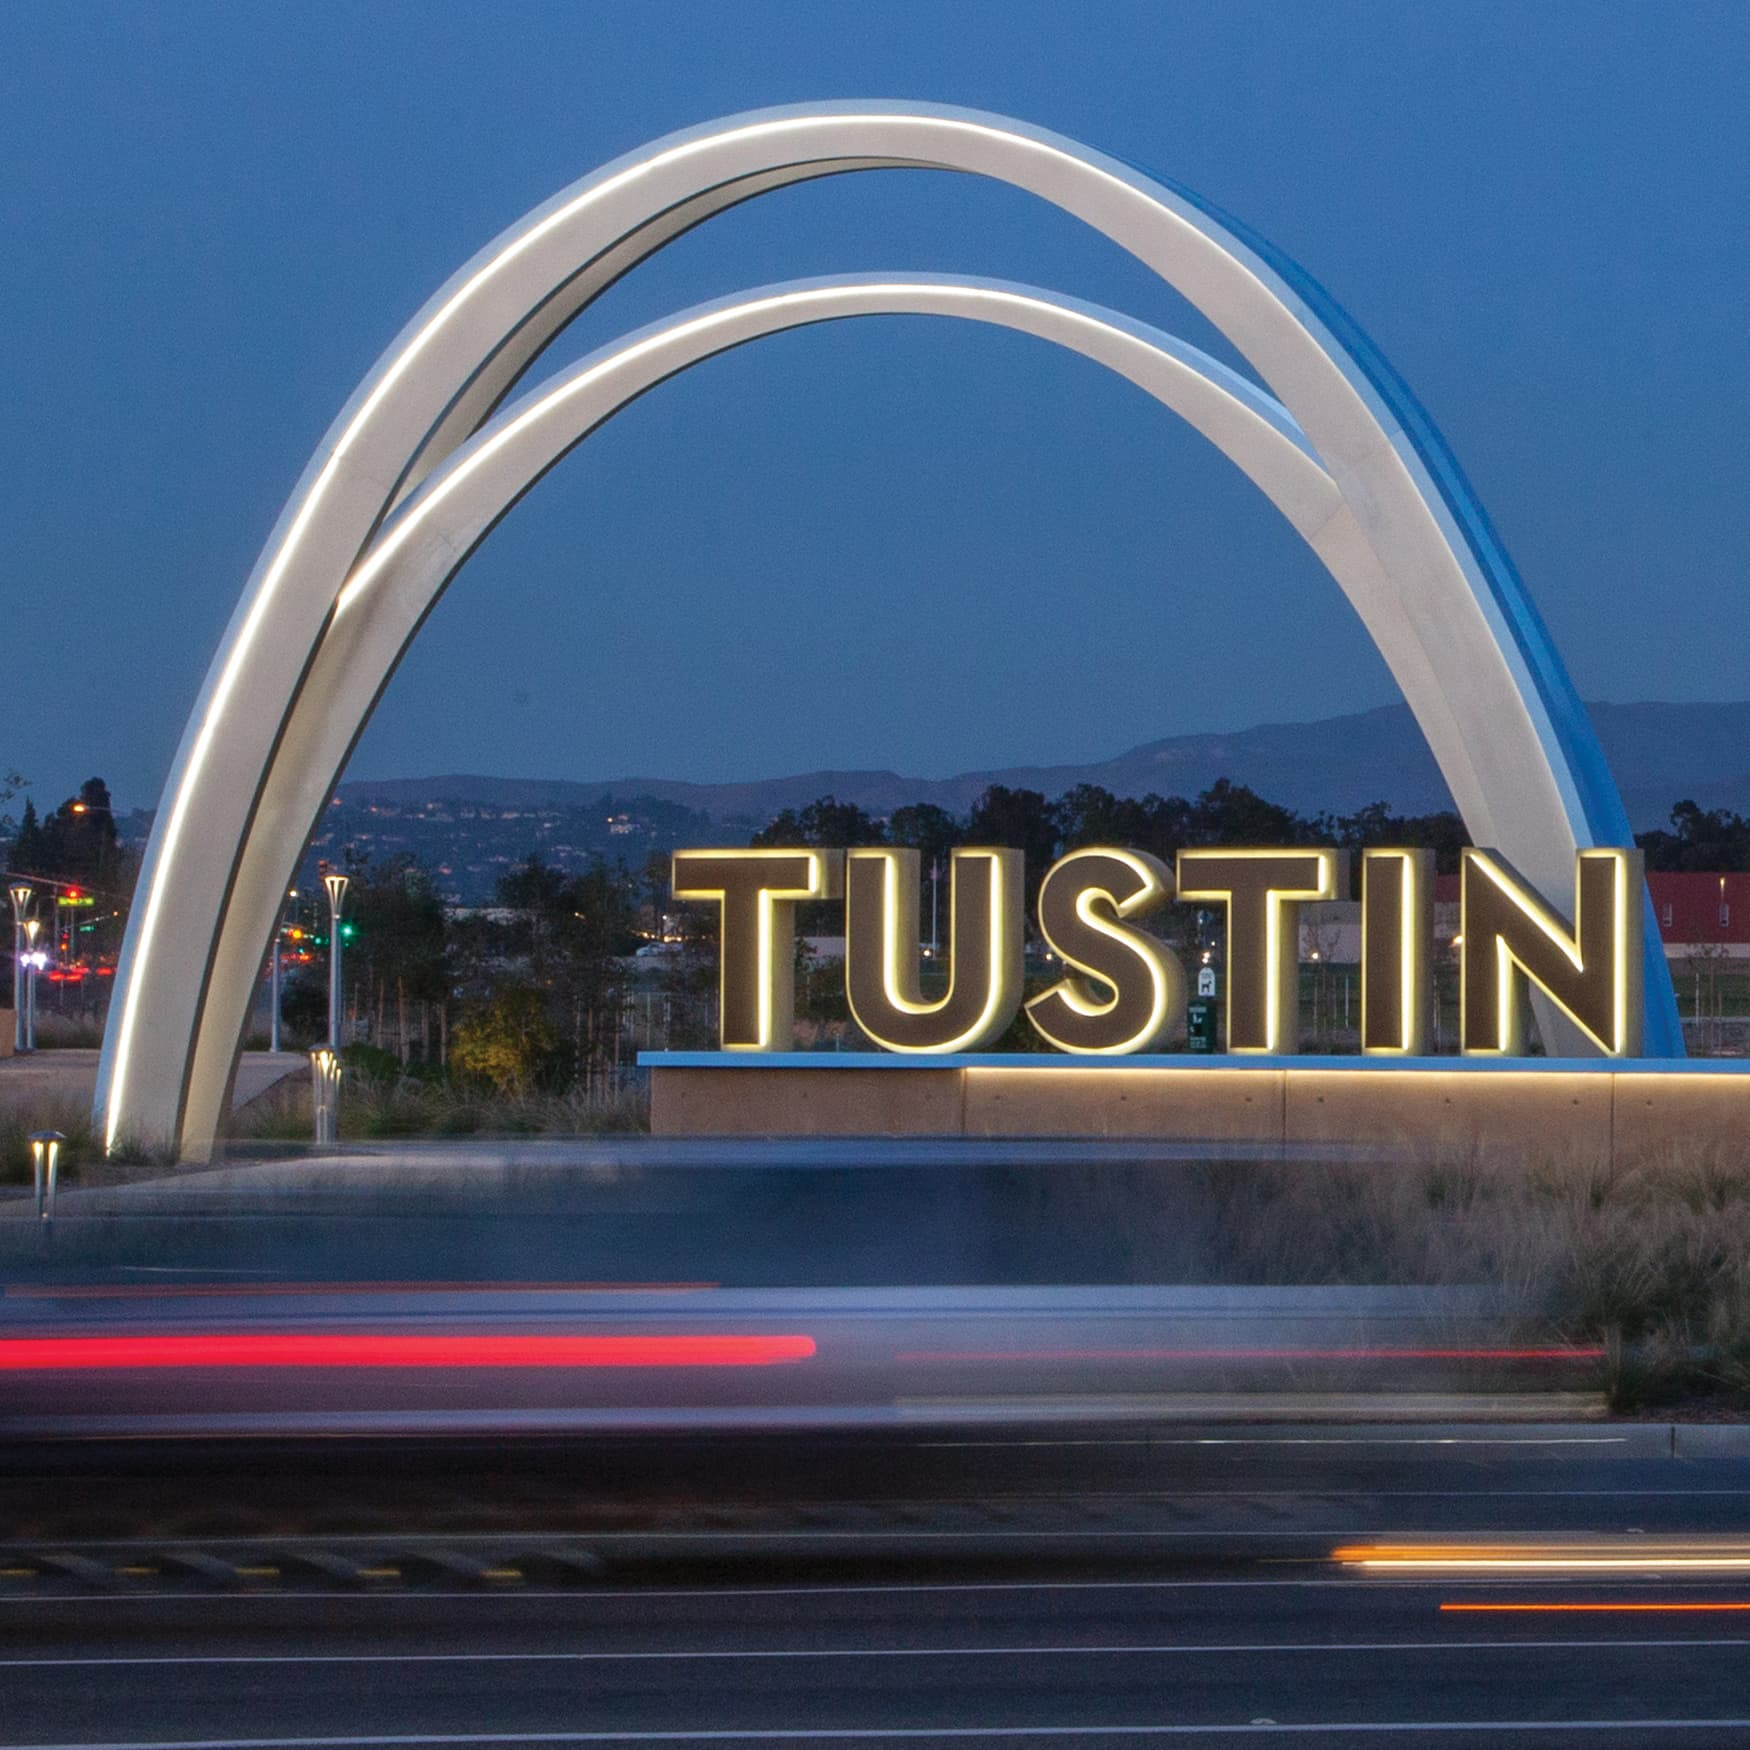 Tustin Legacy monument signage illuminated at night with cars driving by in foreground